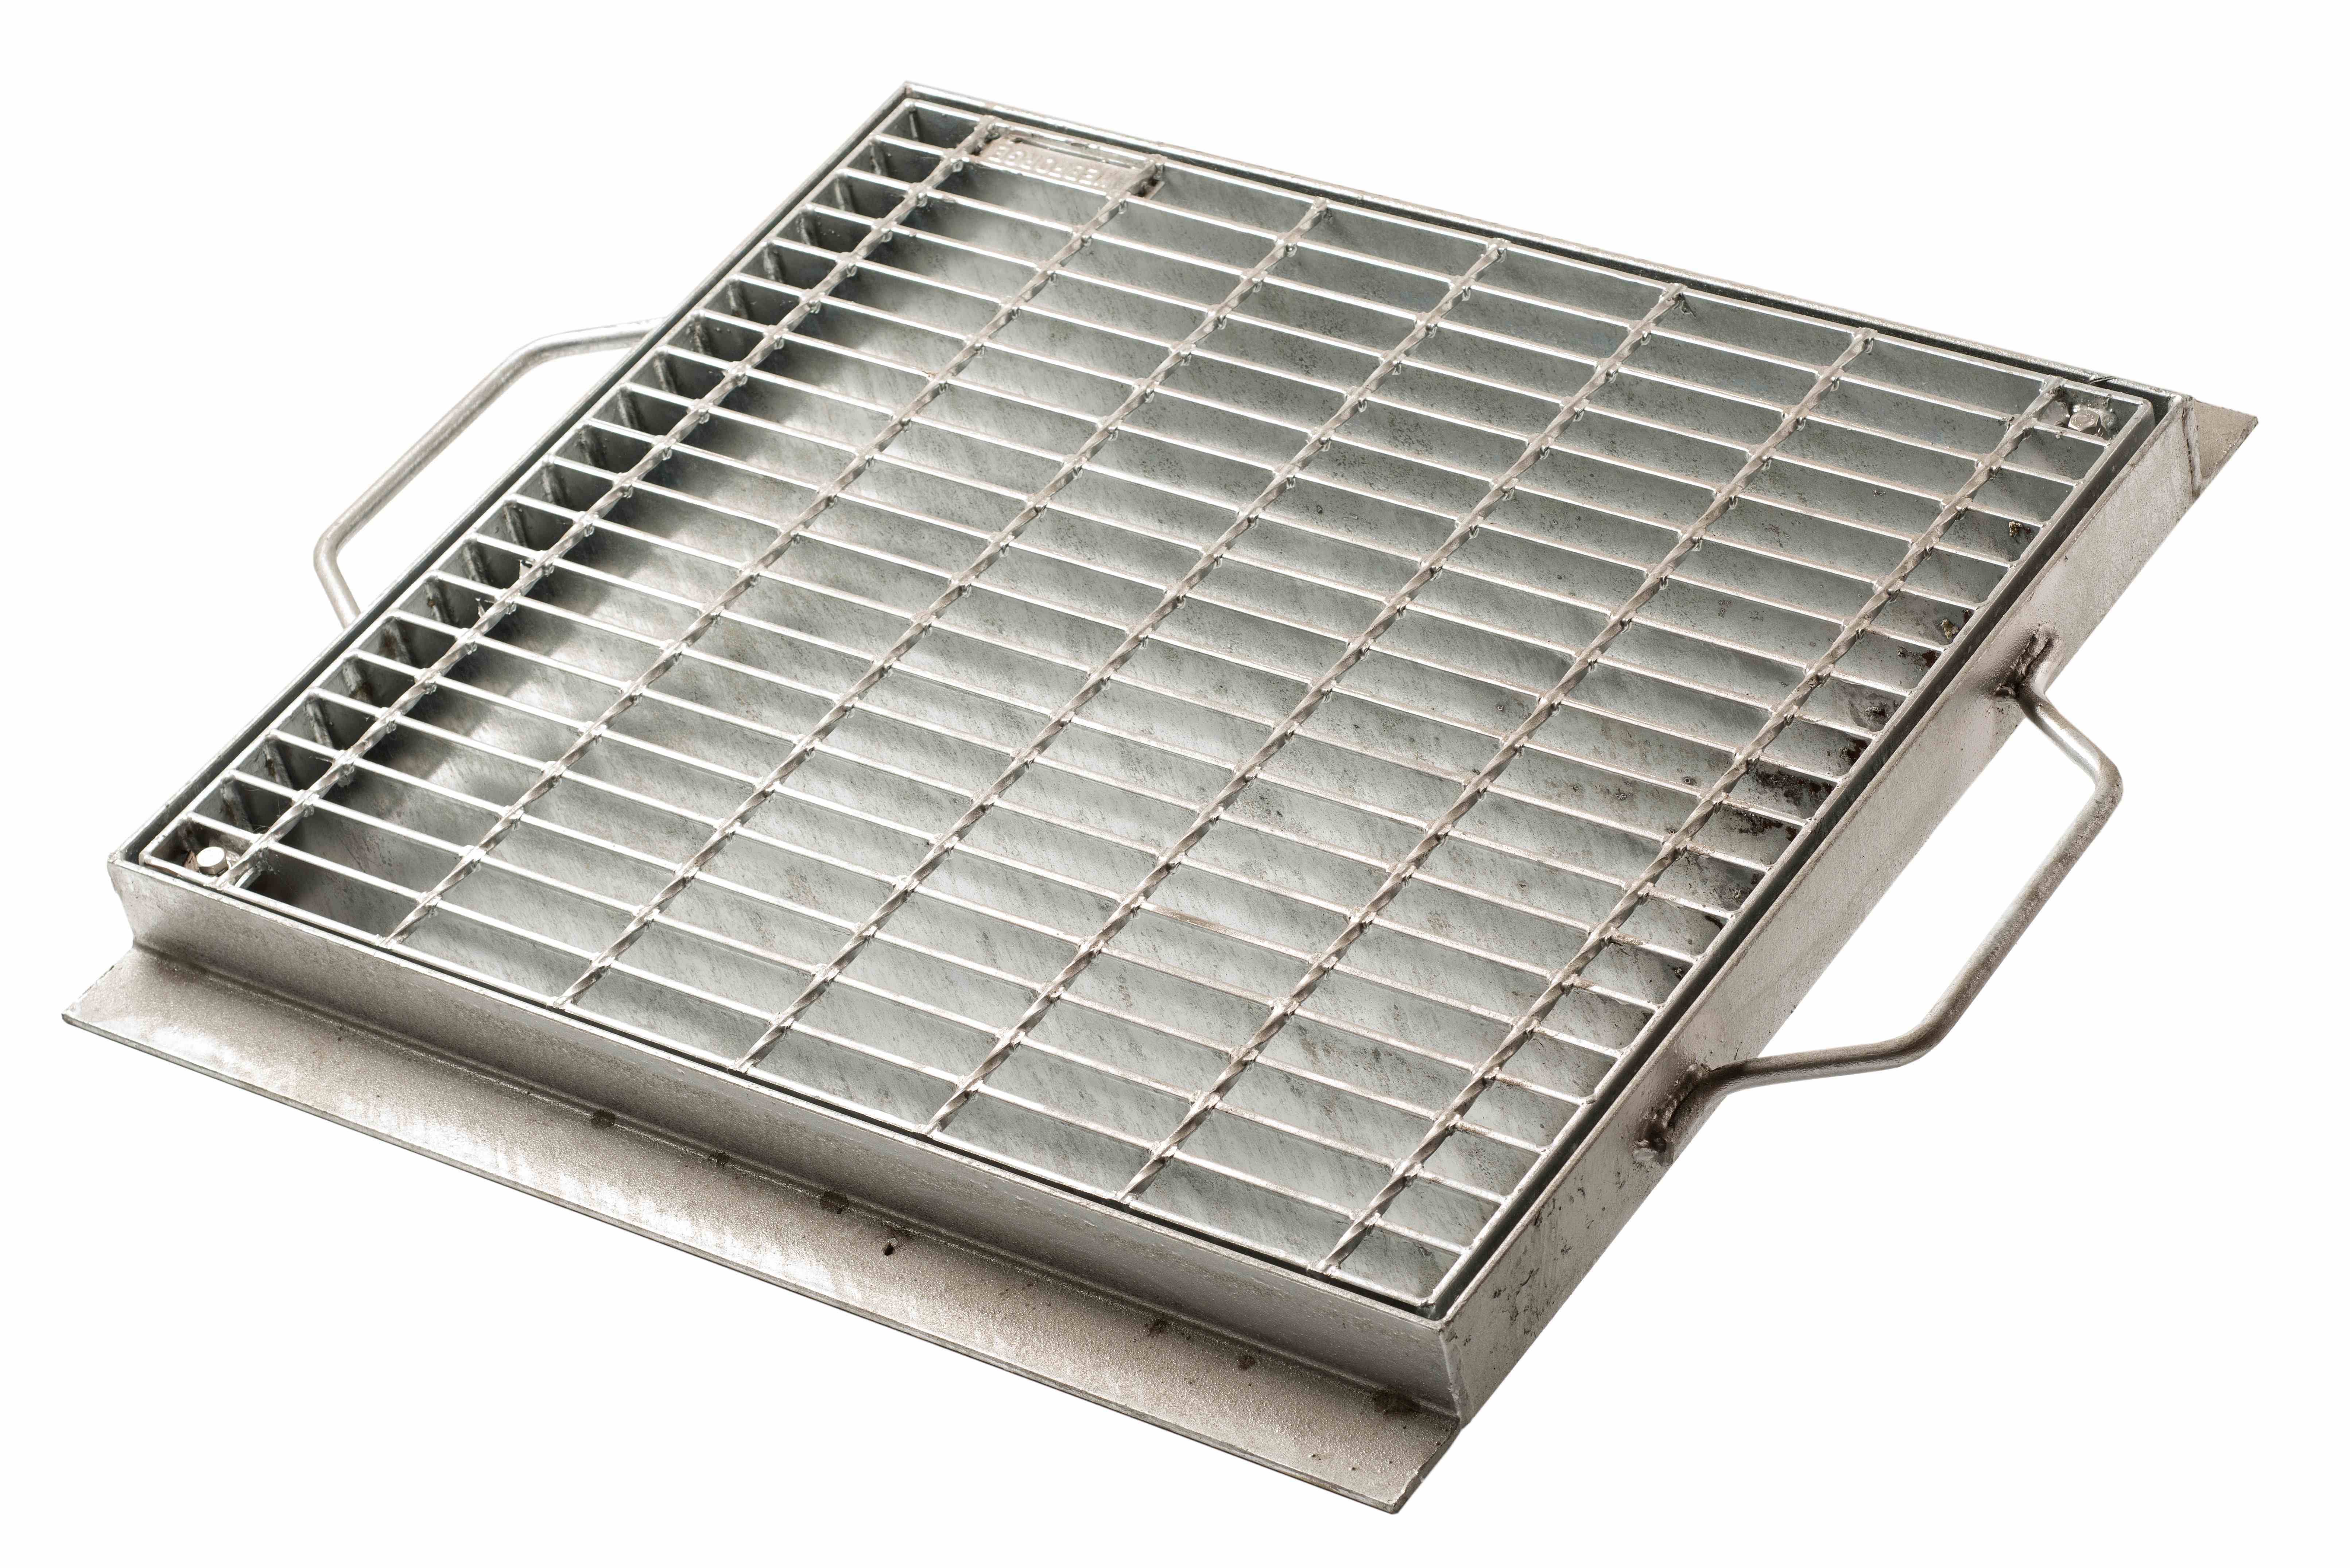 drainage grate A